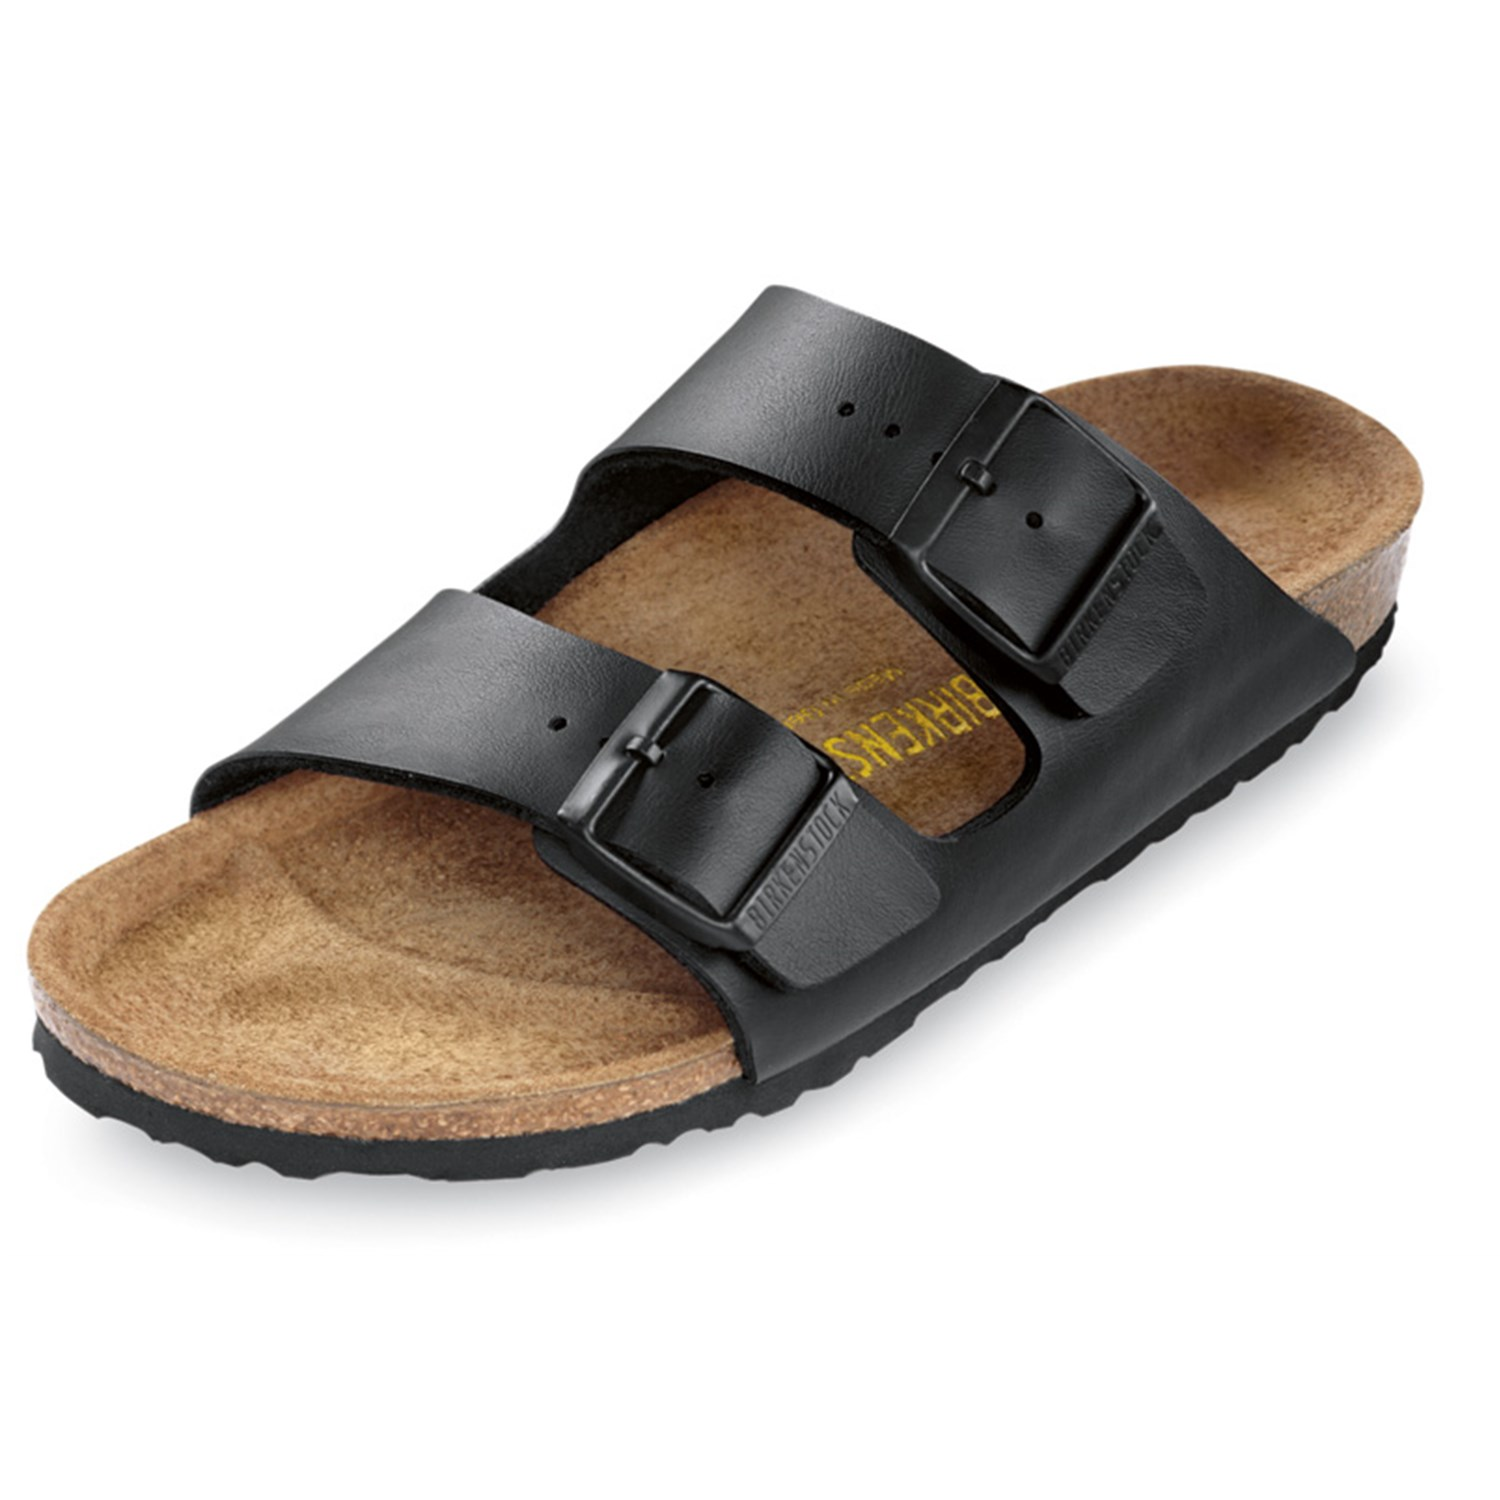 Model Free Shipping And Returns On Birkenstock Arizona Soft Footbed Suede Sandal Women At Nordstromcom Adjustable Suede Straps Top An Iconic Cushioned Sandal, Designed To Exercise Foot And Leg Muscles While Providing Comfort The